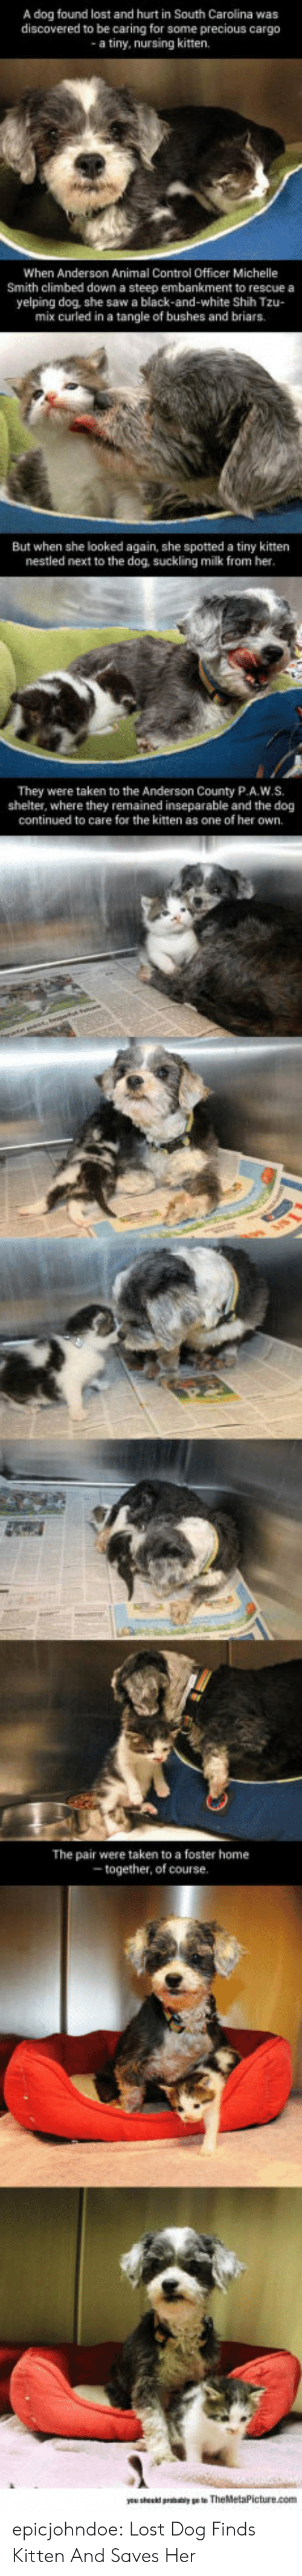 carolina: A dog found lost and hurt in South Carolina was  discovered to be caring for some precious cargo  a tiny, nursing kitten.  When Anderson Animal Control Officer Michelle  Smith climbed down a steep embankment to rescue a  yelping dog, she saw a black-and-white Shih Tzu-  mix curled in a tangle of bushes and briars.  But when she looked again, she spotted a tiny kitten  nestled next to the dog, suckling milk from her  They were taken to the Anderson County P.A.W.S.  shelter, where they remained inseparable and the dog  continued to care for the kitten as one of her own.  The pair were taken to a foster home  together, of course epicjohndoe:  Lost Dog Finds Kitten And Saves Her